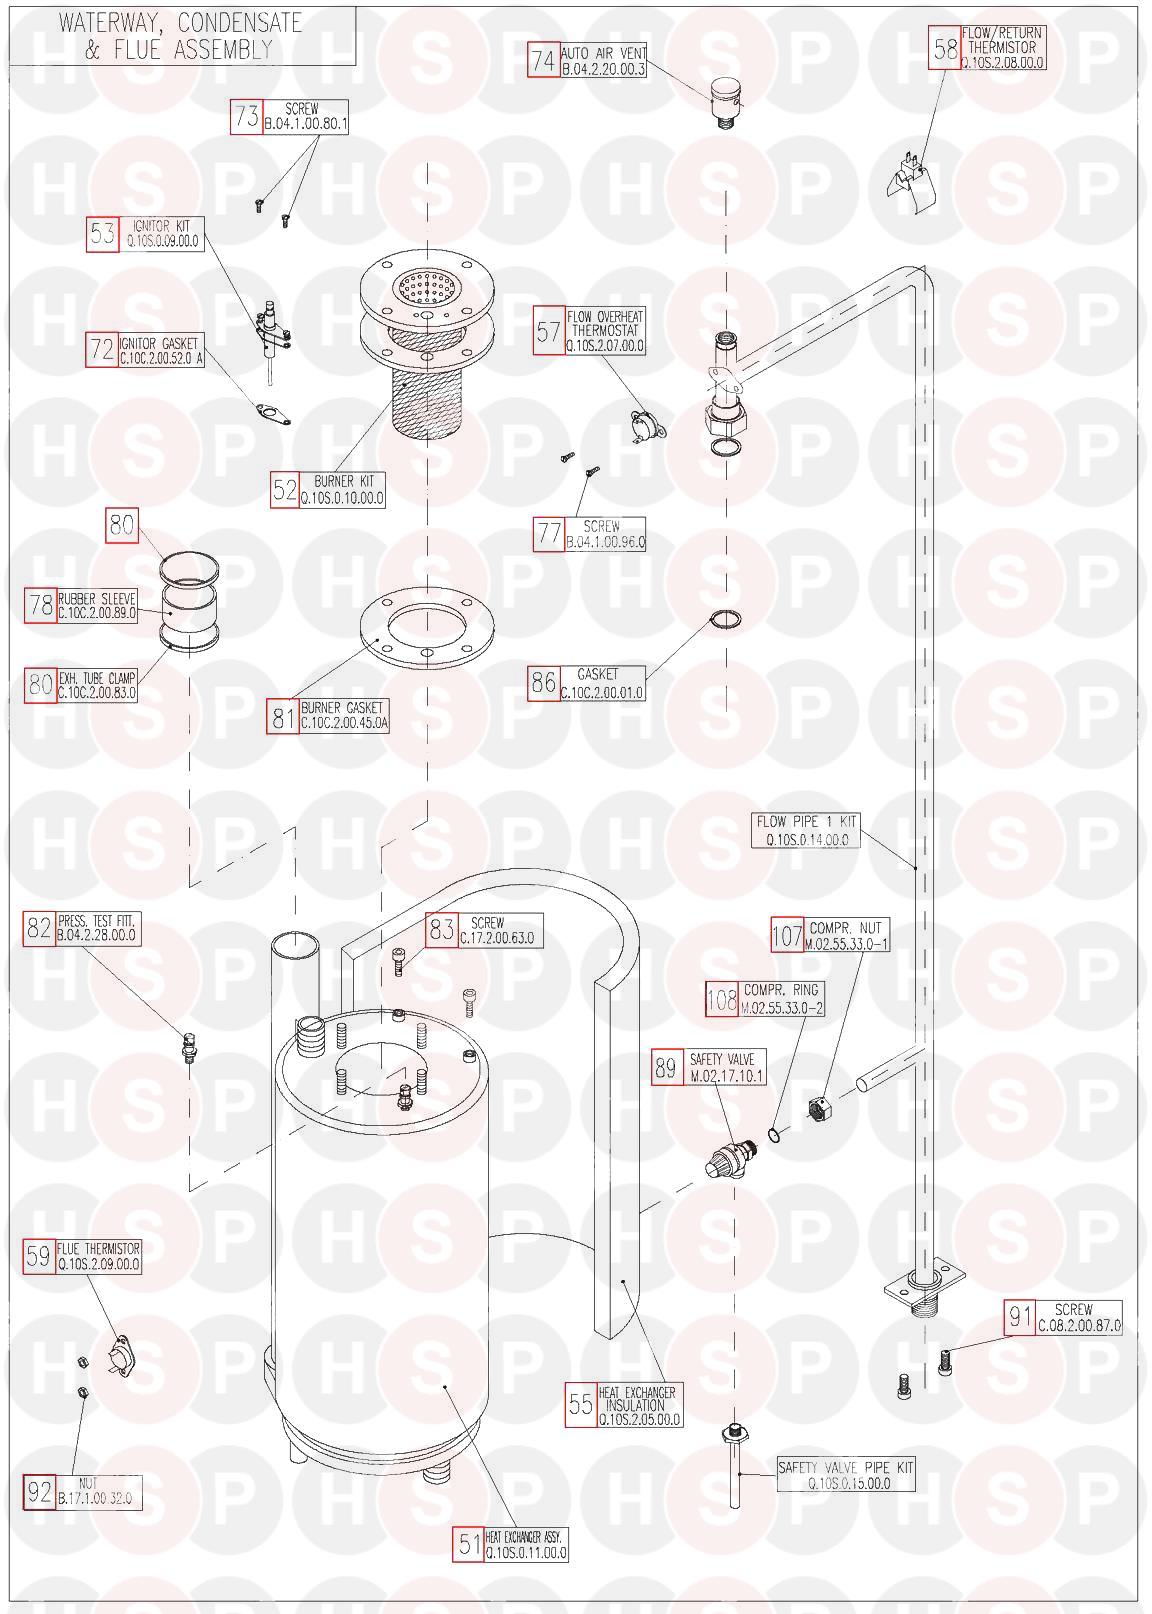 Keston KESTON QUDOS 28s Appliance Diagram (CONDENSATE